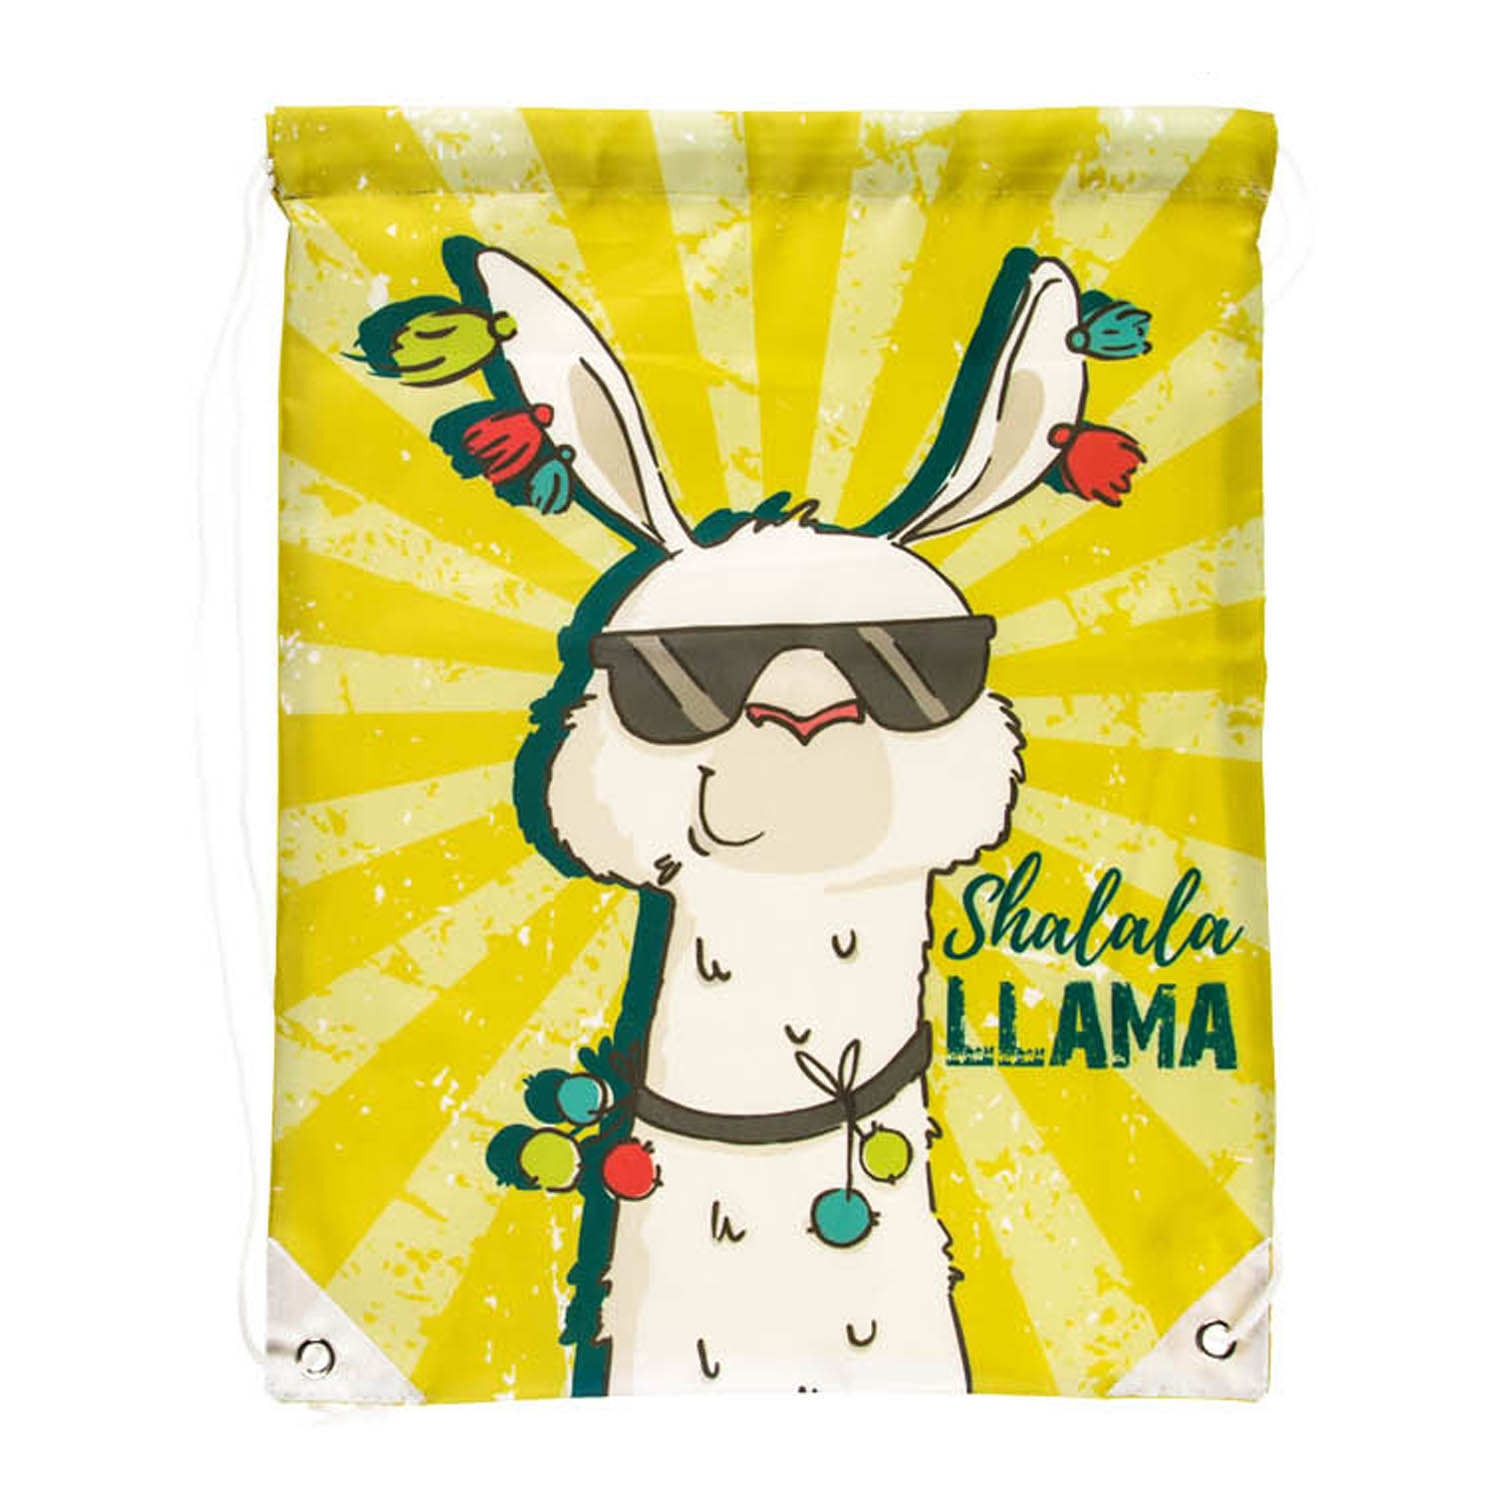 42x34cm Assorted Llama Novelty Drawstring Bag Backpack Gym Sack Kids Gift Idea